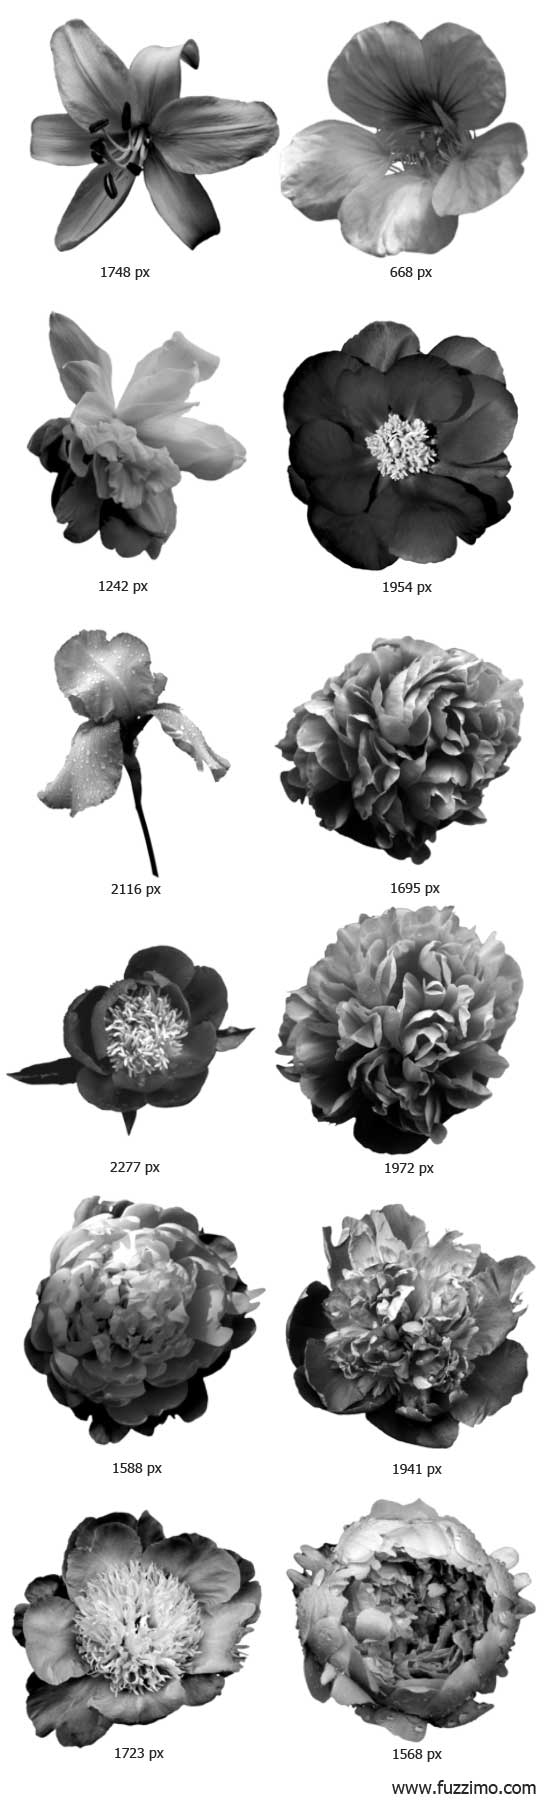 fzm-PhotoshopFlowerBrushes-02